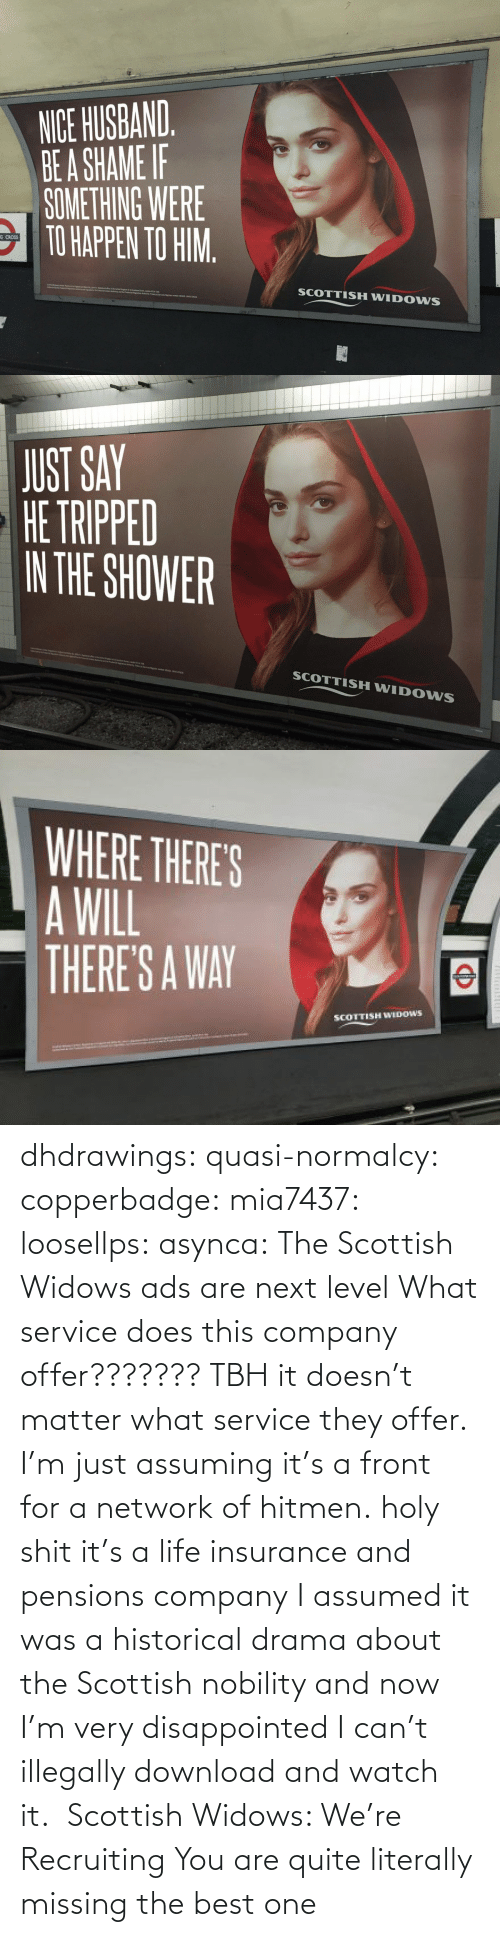 Very: dhdrawings:  quasi-normalcy:  copperbadge:  mia7437:  loosellps:  asynca: The Scottish Widows ads are next level What service does this company offer??????? TBH it doesn't matter what service they offer. I'm just assuming it's a front for a network of hitmen.  holy shit it's a life insurance and pensions company  I assumed it was a historical drama about the Scottish nobility and now I'm very disappointed I can't illegally download and watch it.     Scottish Widows: We're Recruiting    You are quite literally missing the best one